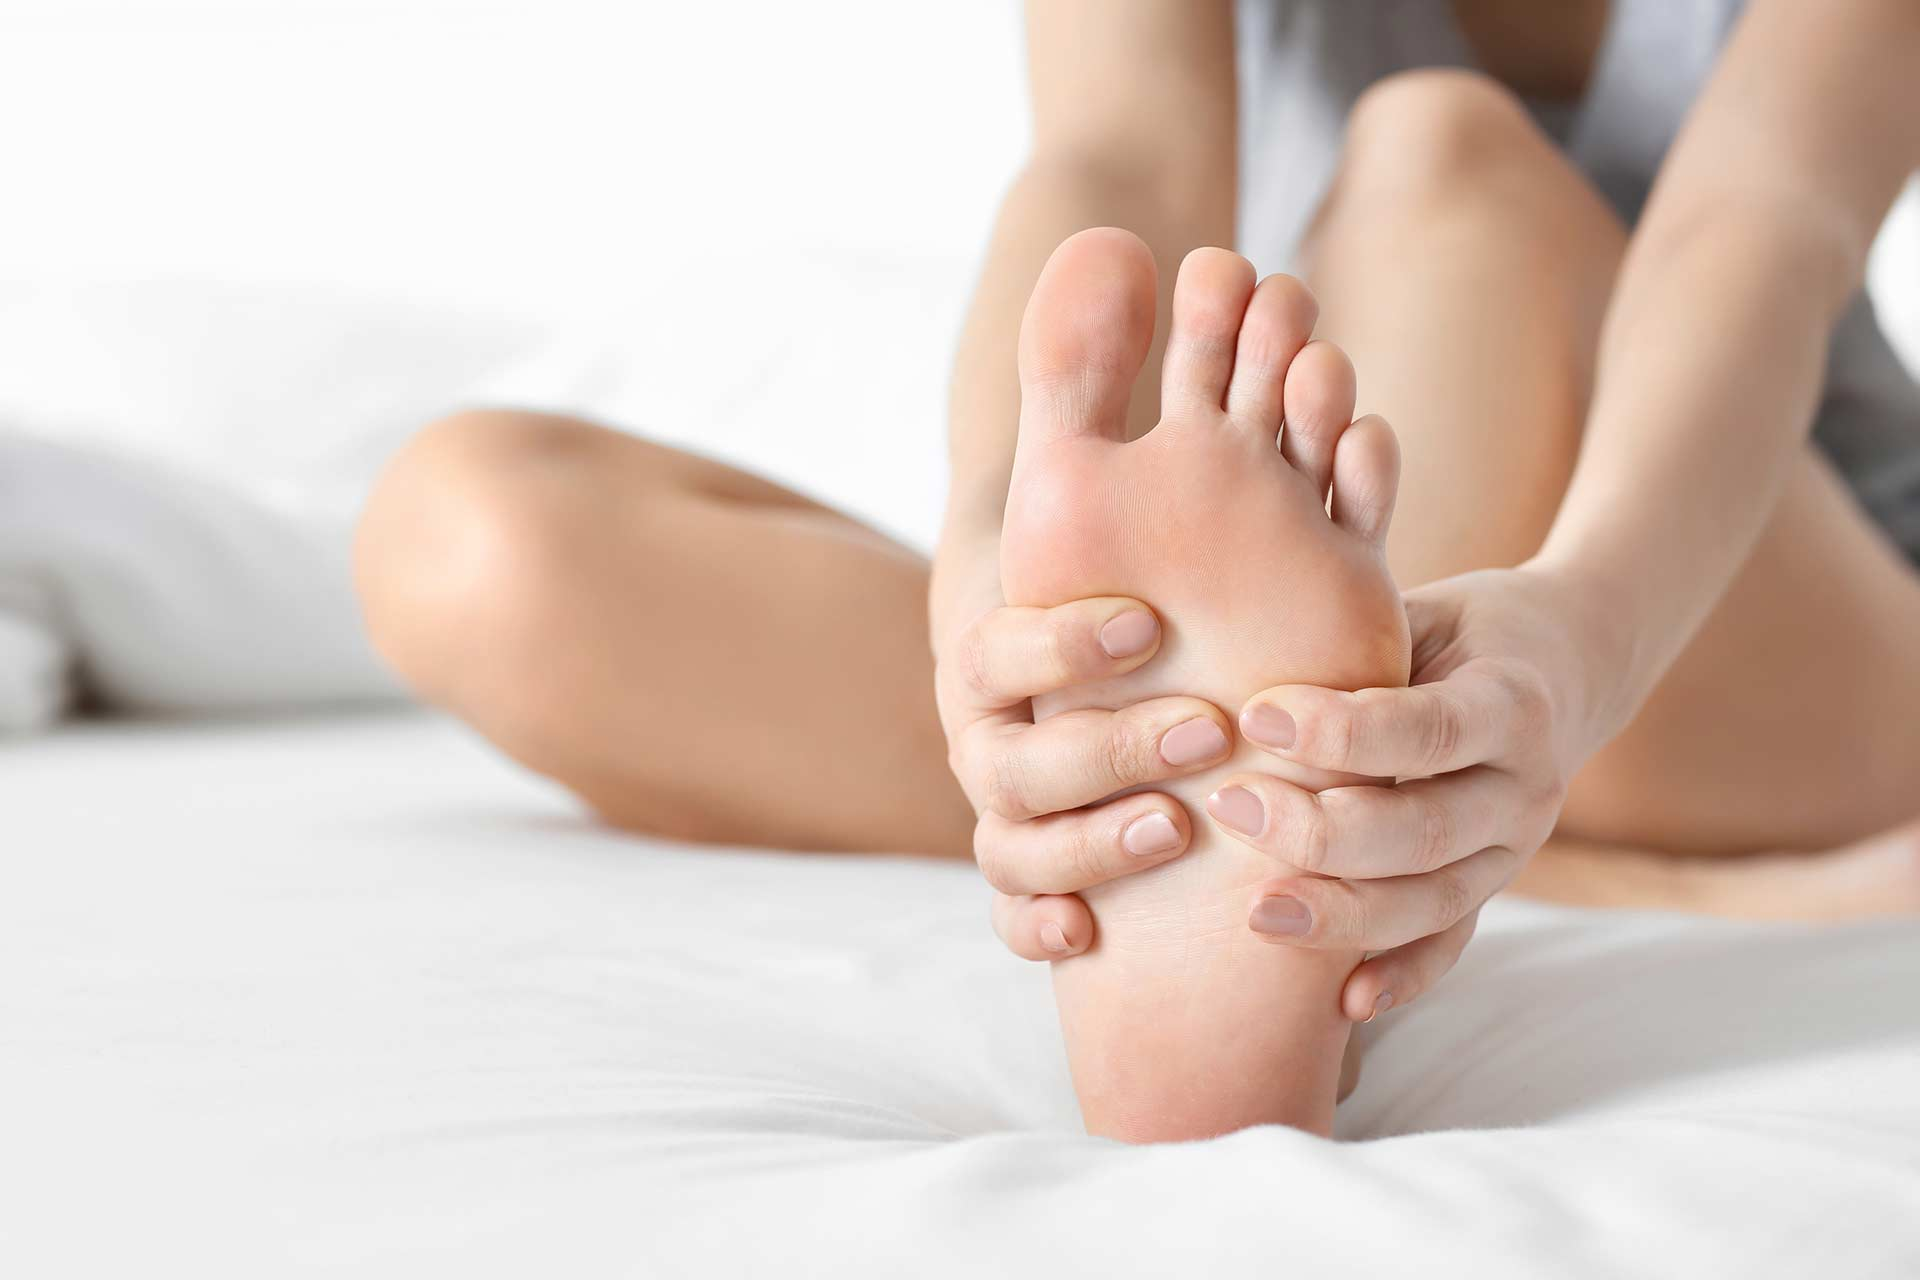 Wearing Flip Flops May Lead to Plantar Fasciitis